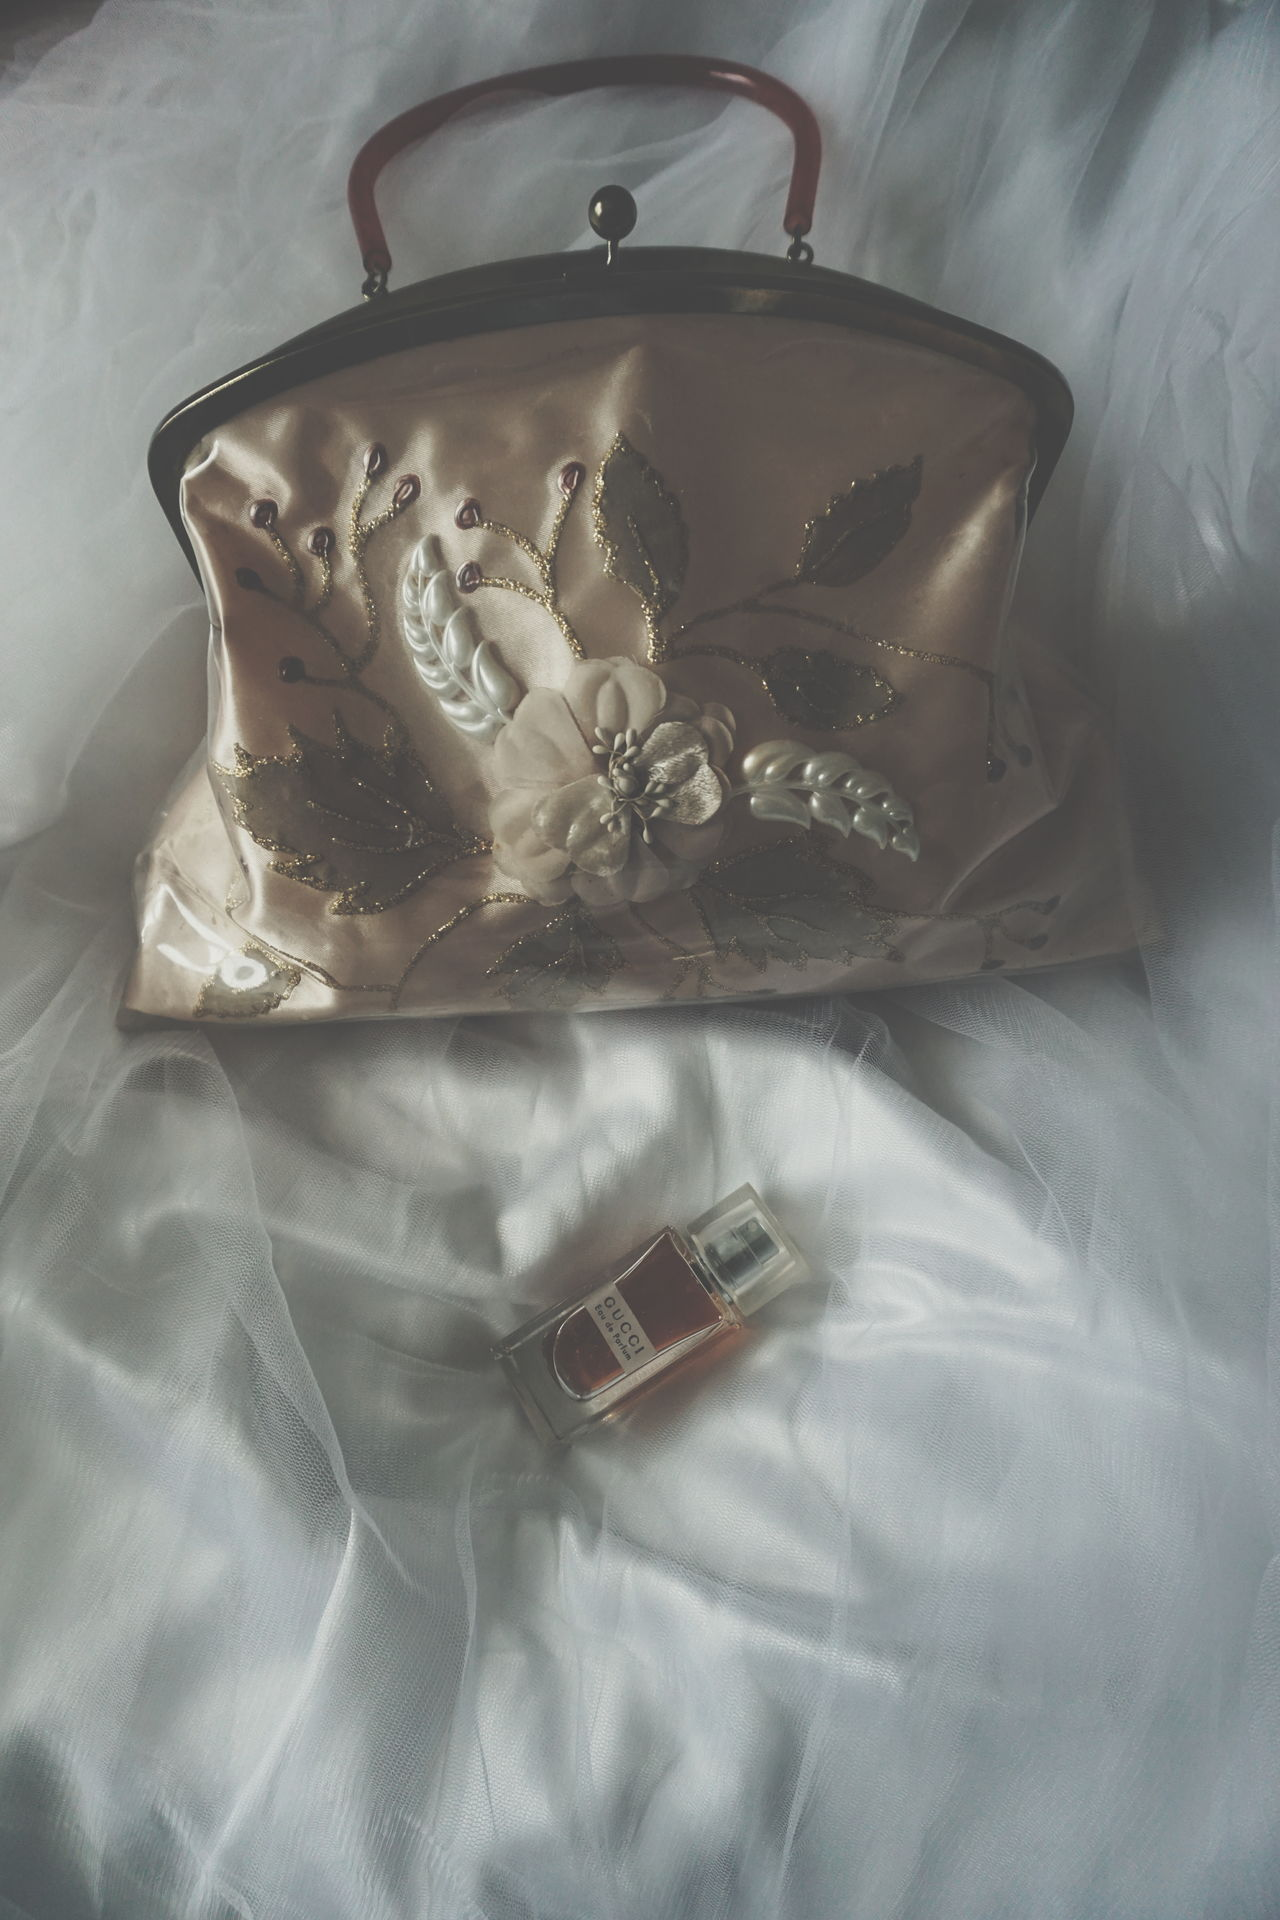 vintage purse No People Indoors  Gold Colored Luxury Jewelry Precious Gem Close-up Day Perfumes Parfume Perfume Sprayer GUCCI Wedding Pastel Colors Pink Gold Purse Purses Pastel Power Heritage Memories Vintage Old White Background Wedding Dress Lieblingsteil